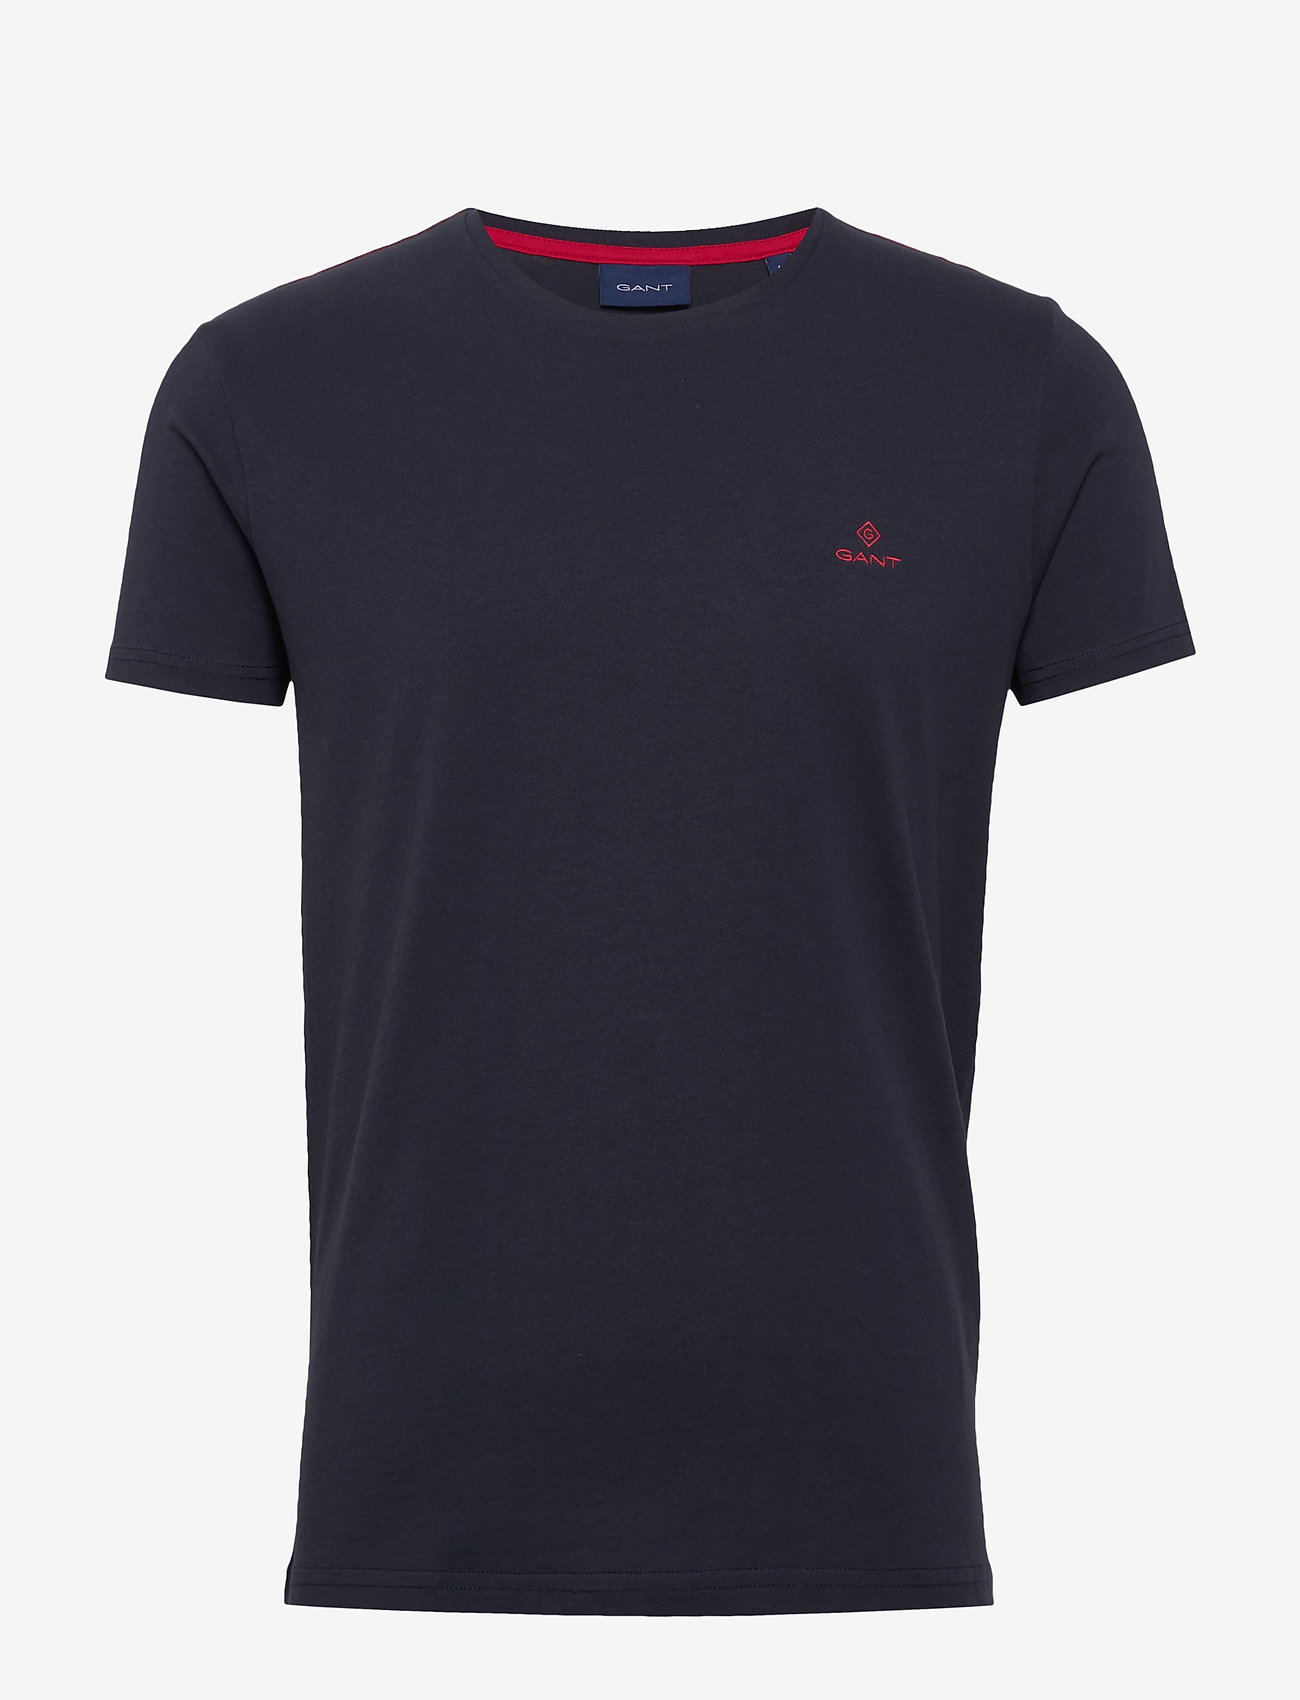 GANT - CONTRAST LOGO SS T-SHIRT - basic t-shirts - evening blue - 0